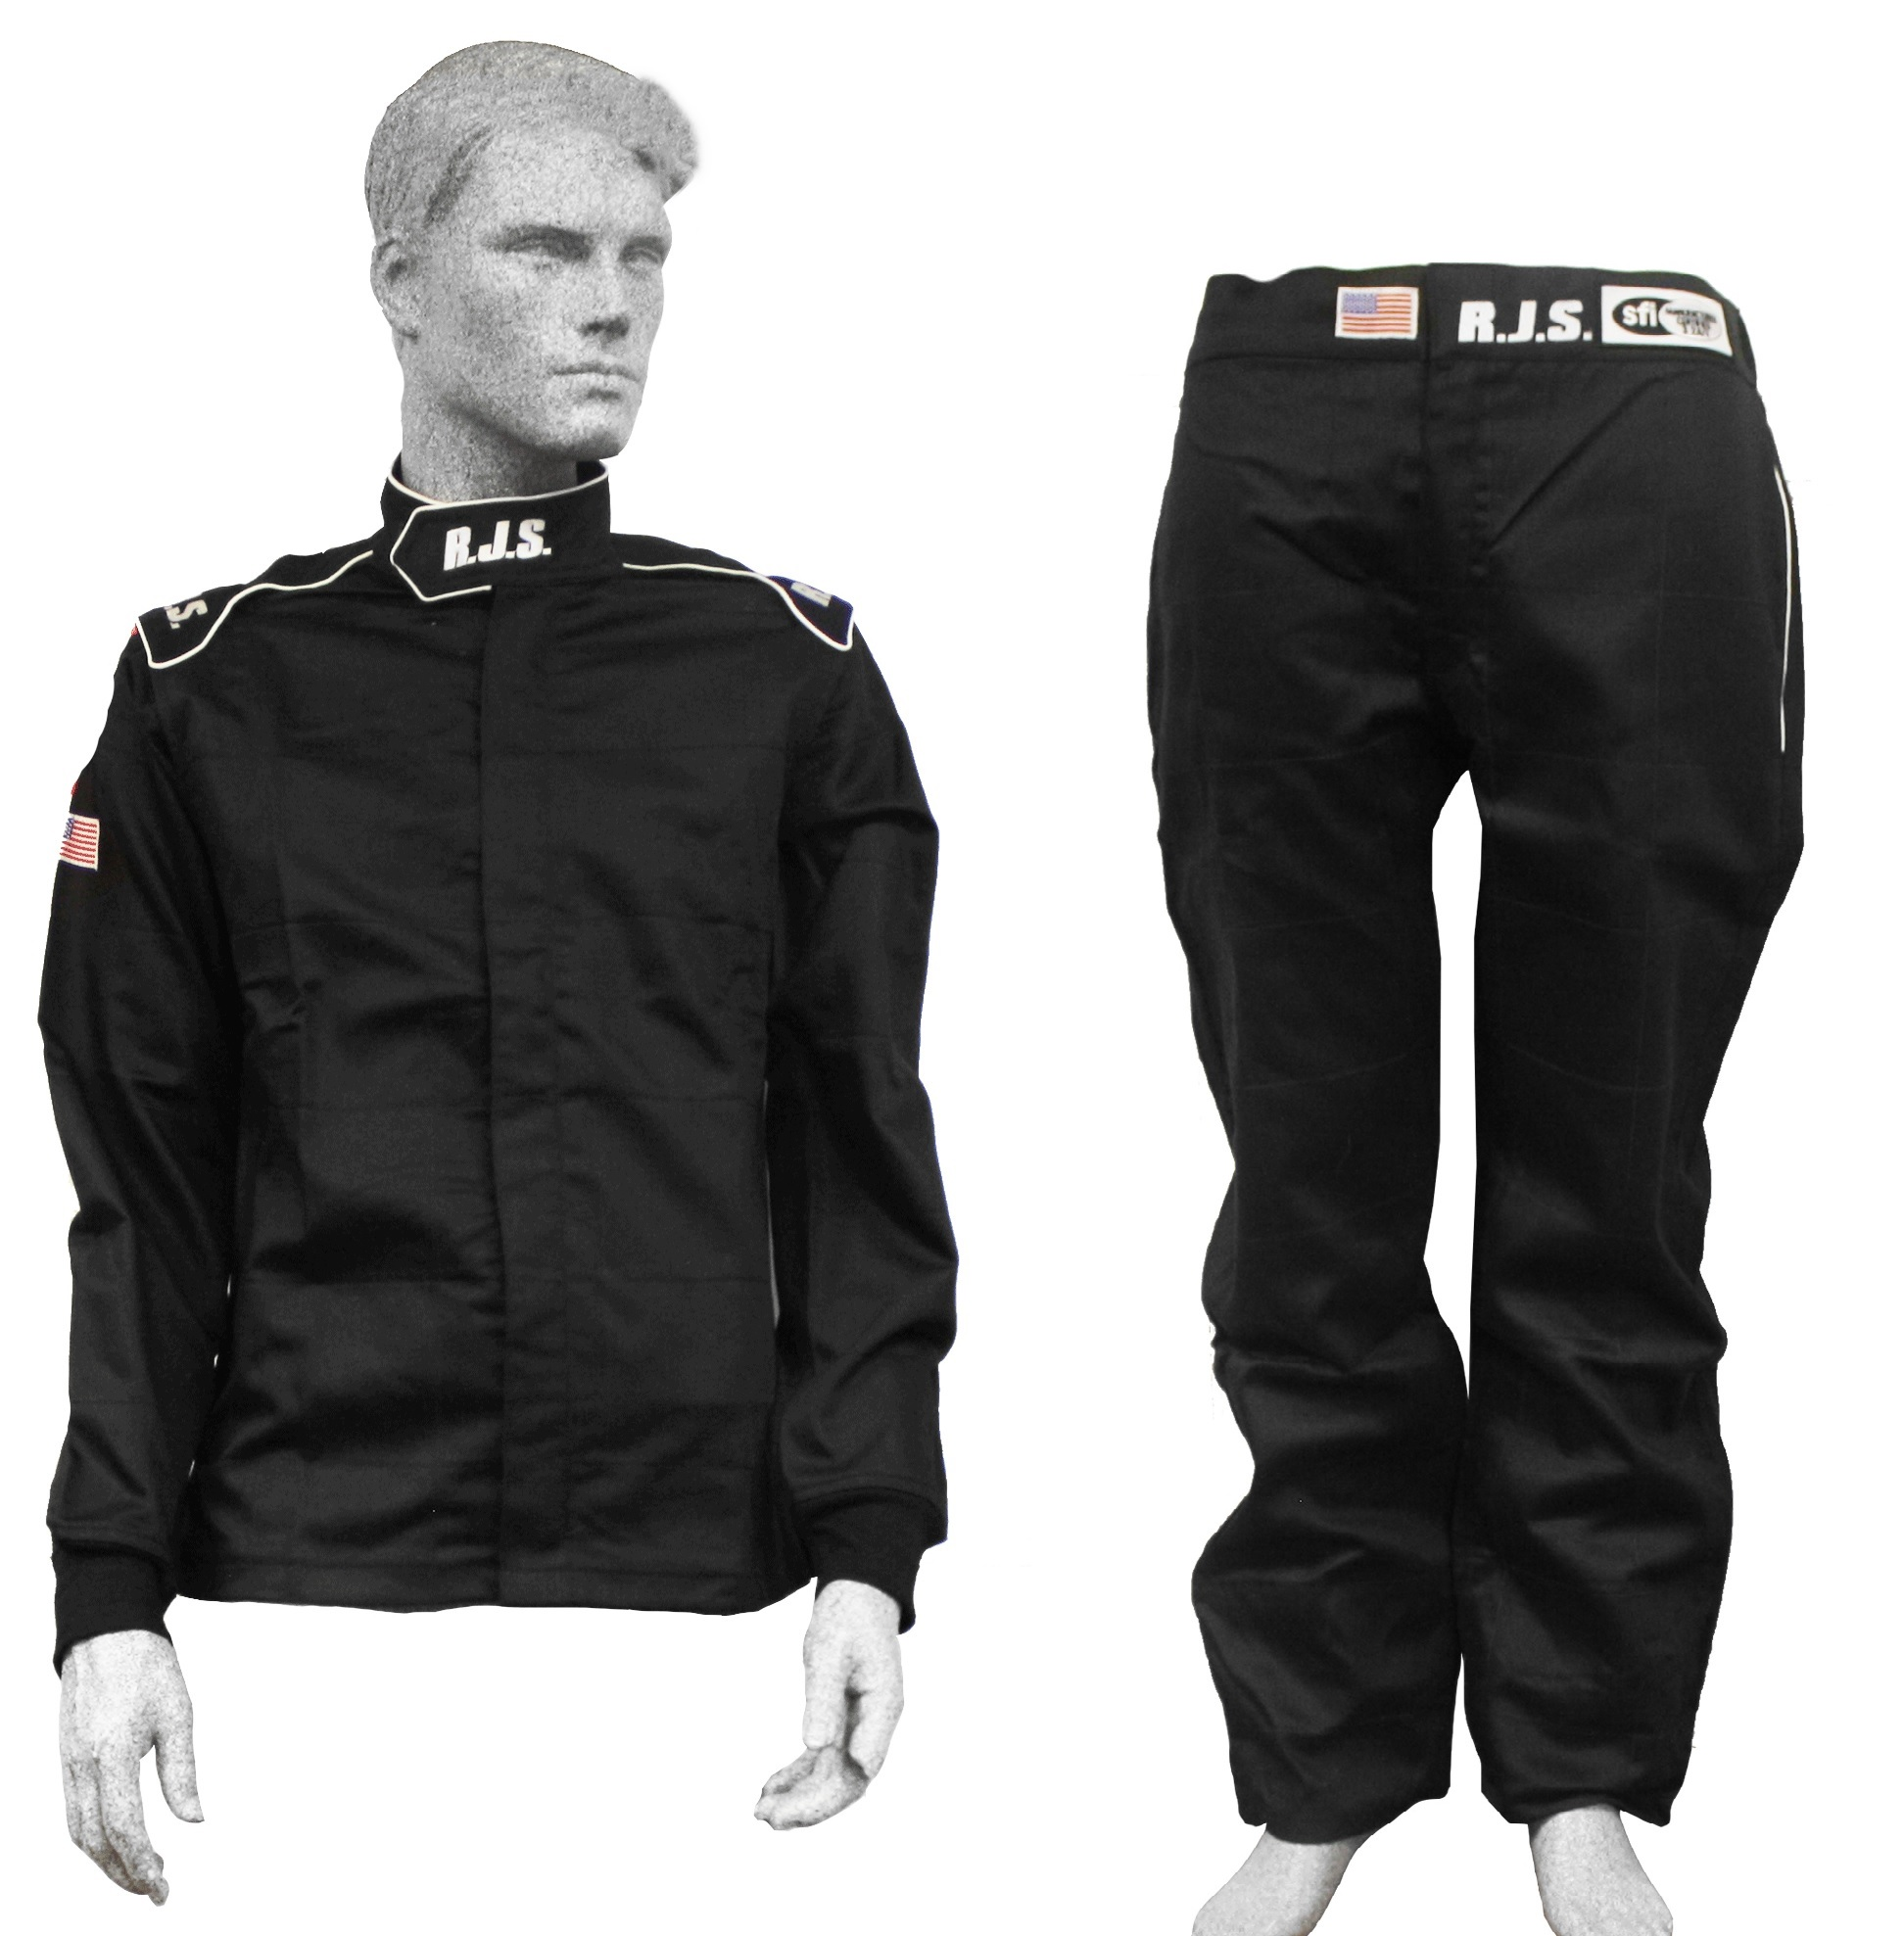 WHITE STRIPE ADULT 3X SFI 3.2A//1 RJS RACING 3XL FIRE SUIT RACING PANTS BLACK